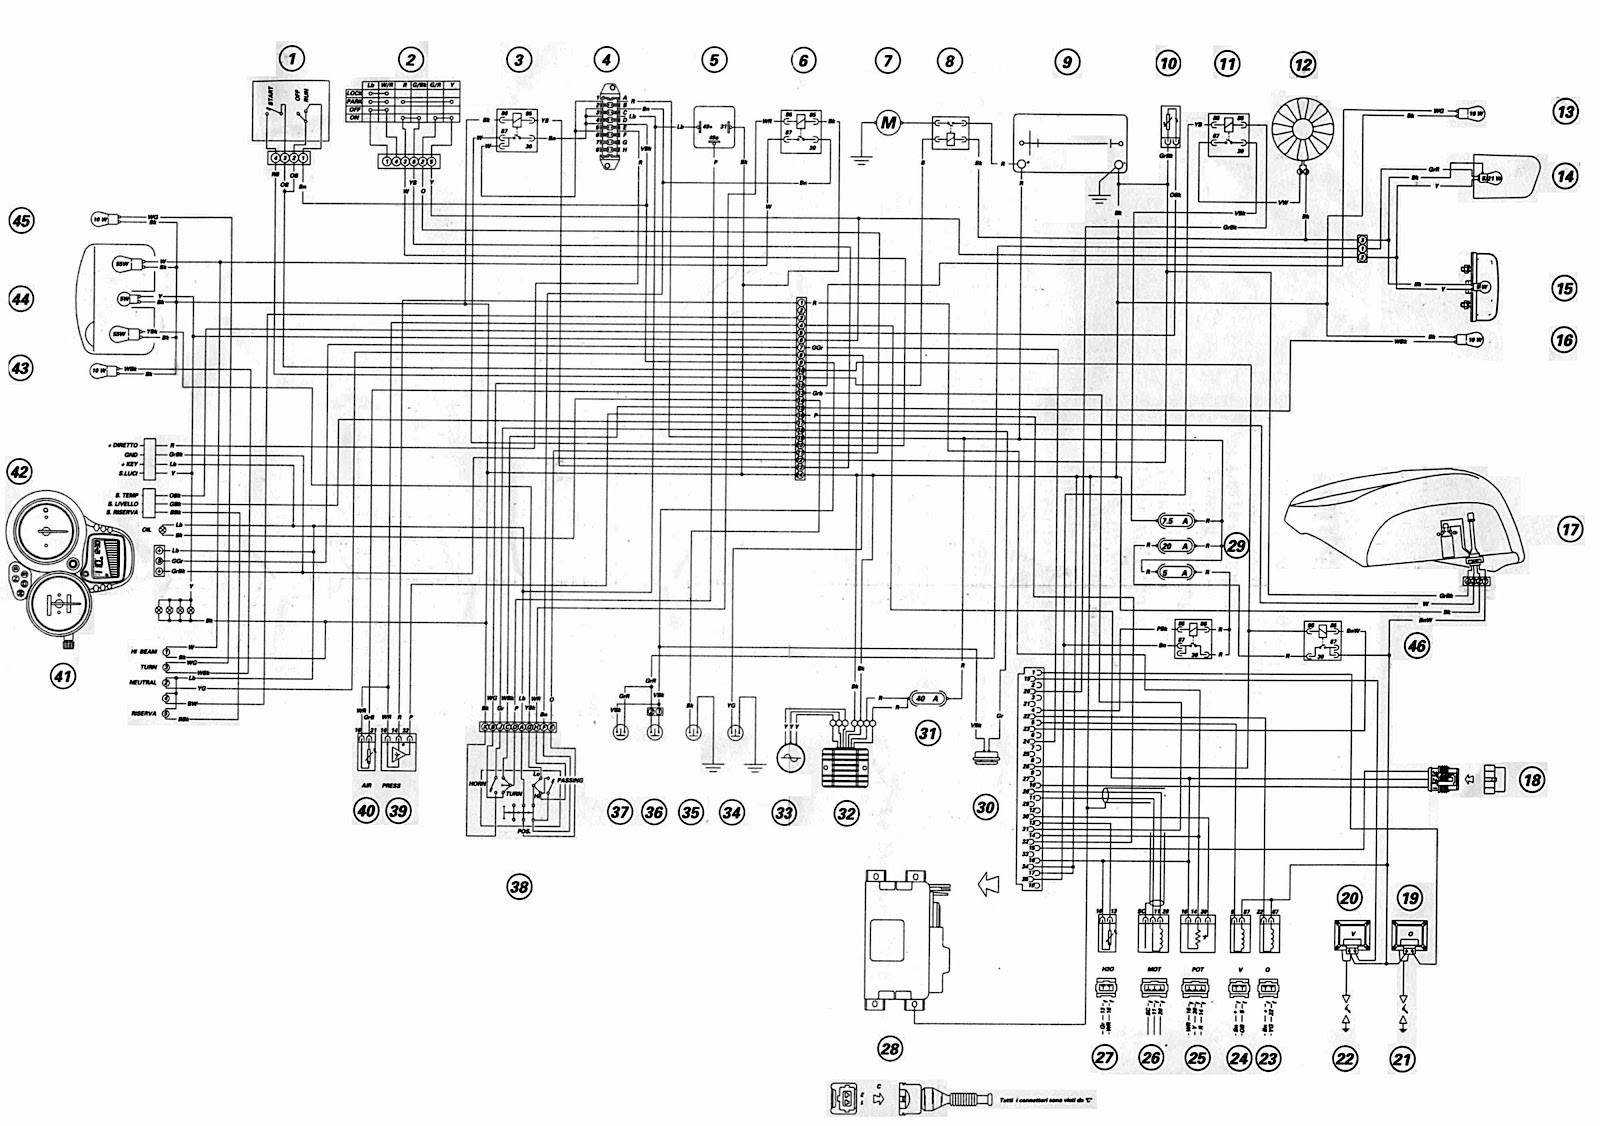 2003 big dog wiring harness diagram complete wiring diagrams u2022 rh oldorchardfarm co 2003 big dog wiring diagram Big Dog Wiring Schematic Diagram